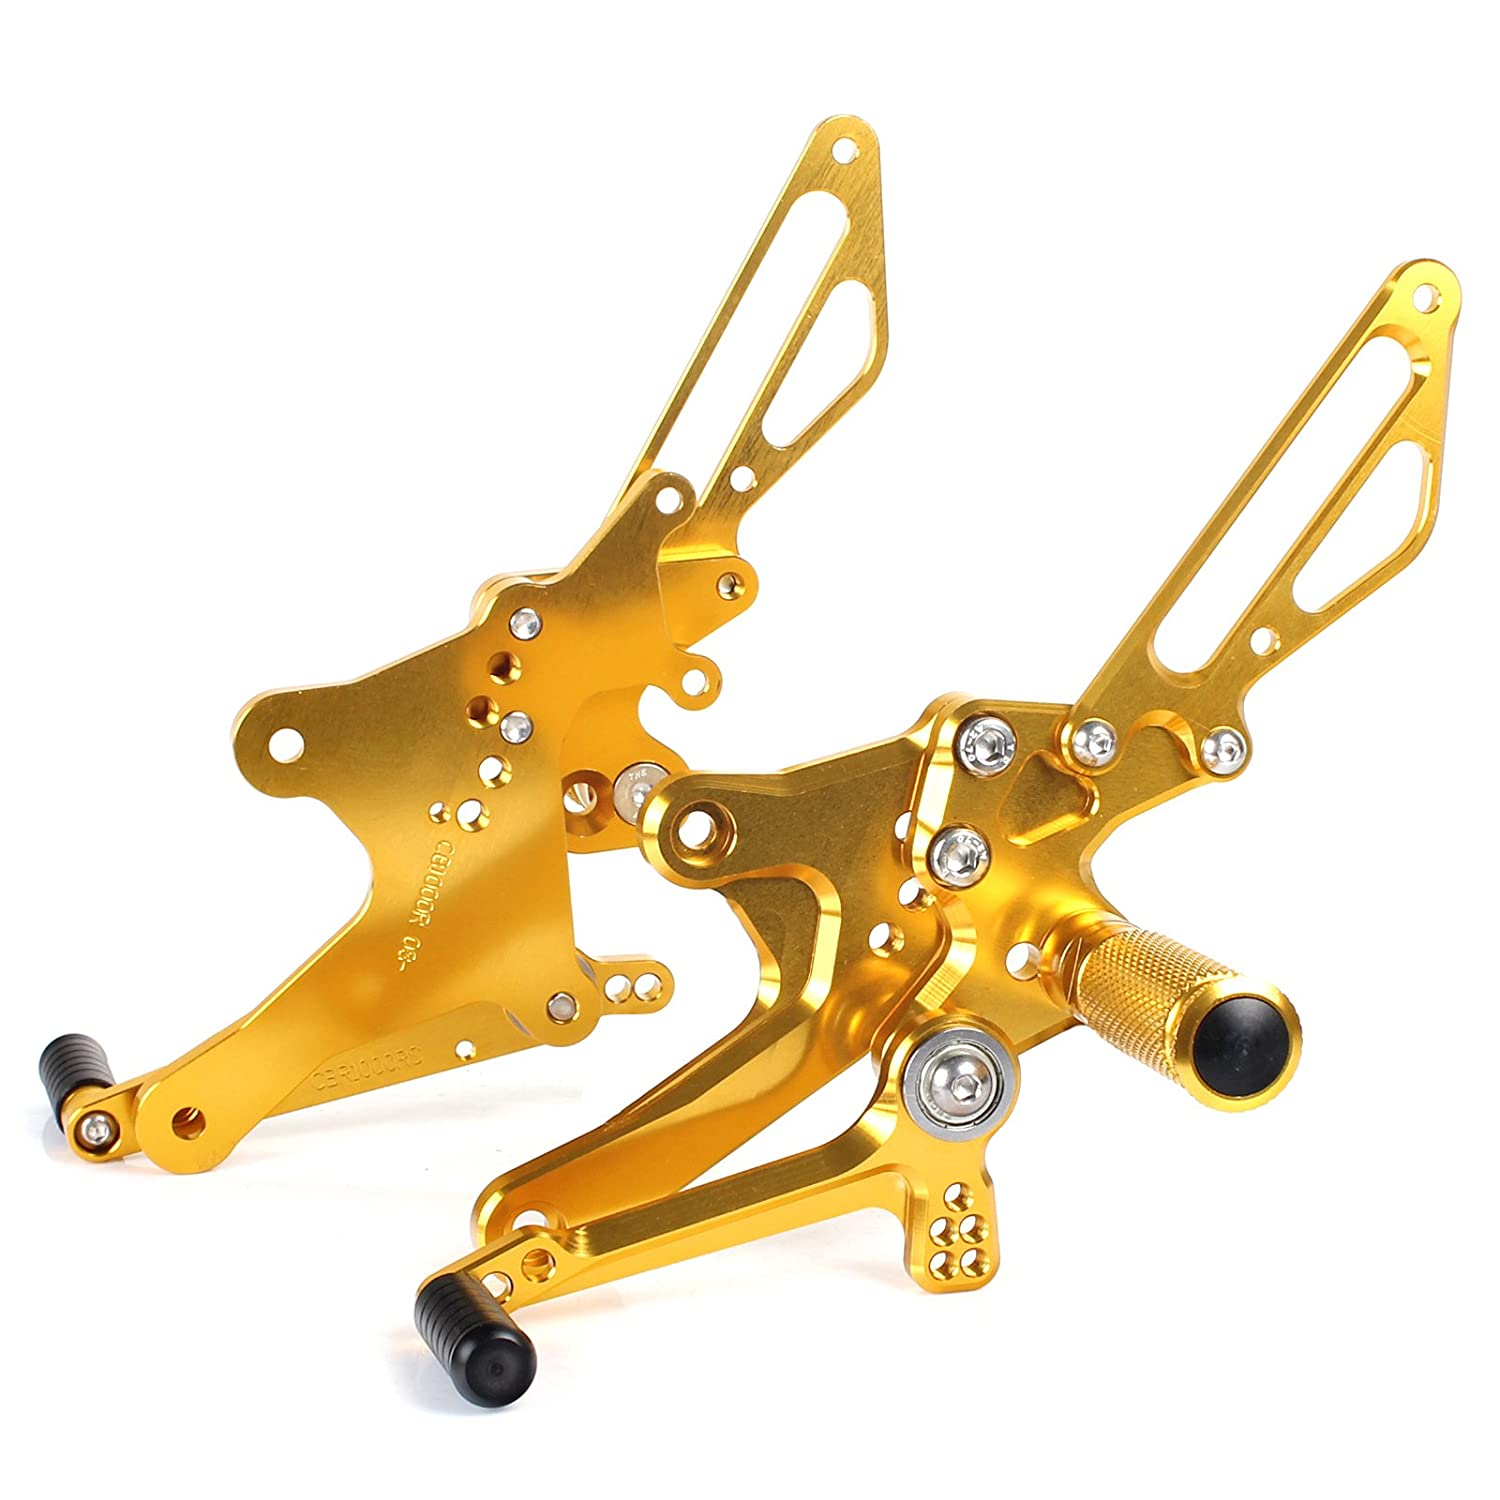 TARAZON CNC Adjustable Rearsets Rear Sets Footpegs for Honda CB1000R CB 1000 R 2008-2014 Thai-Racing Co. Ltd